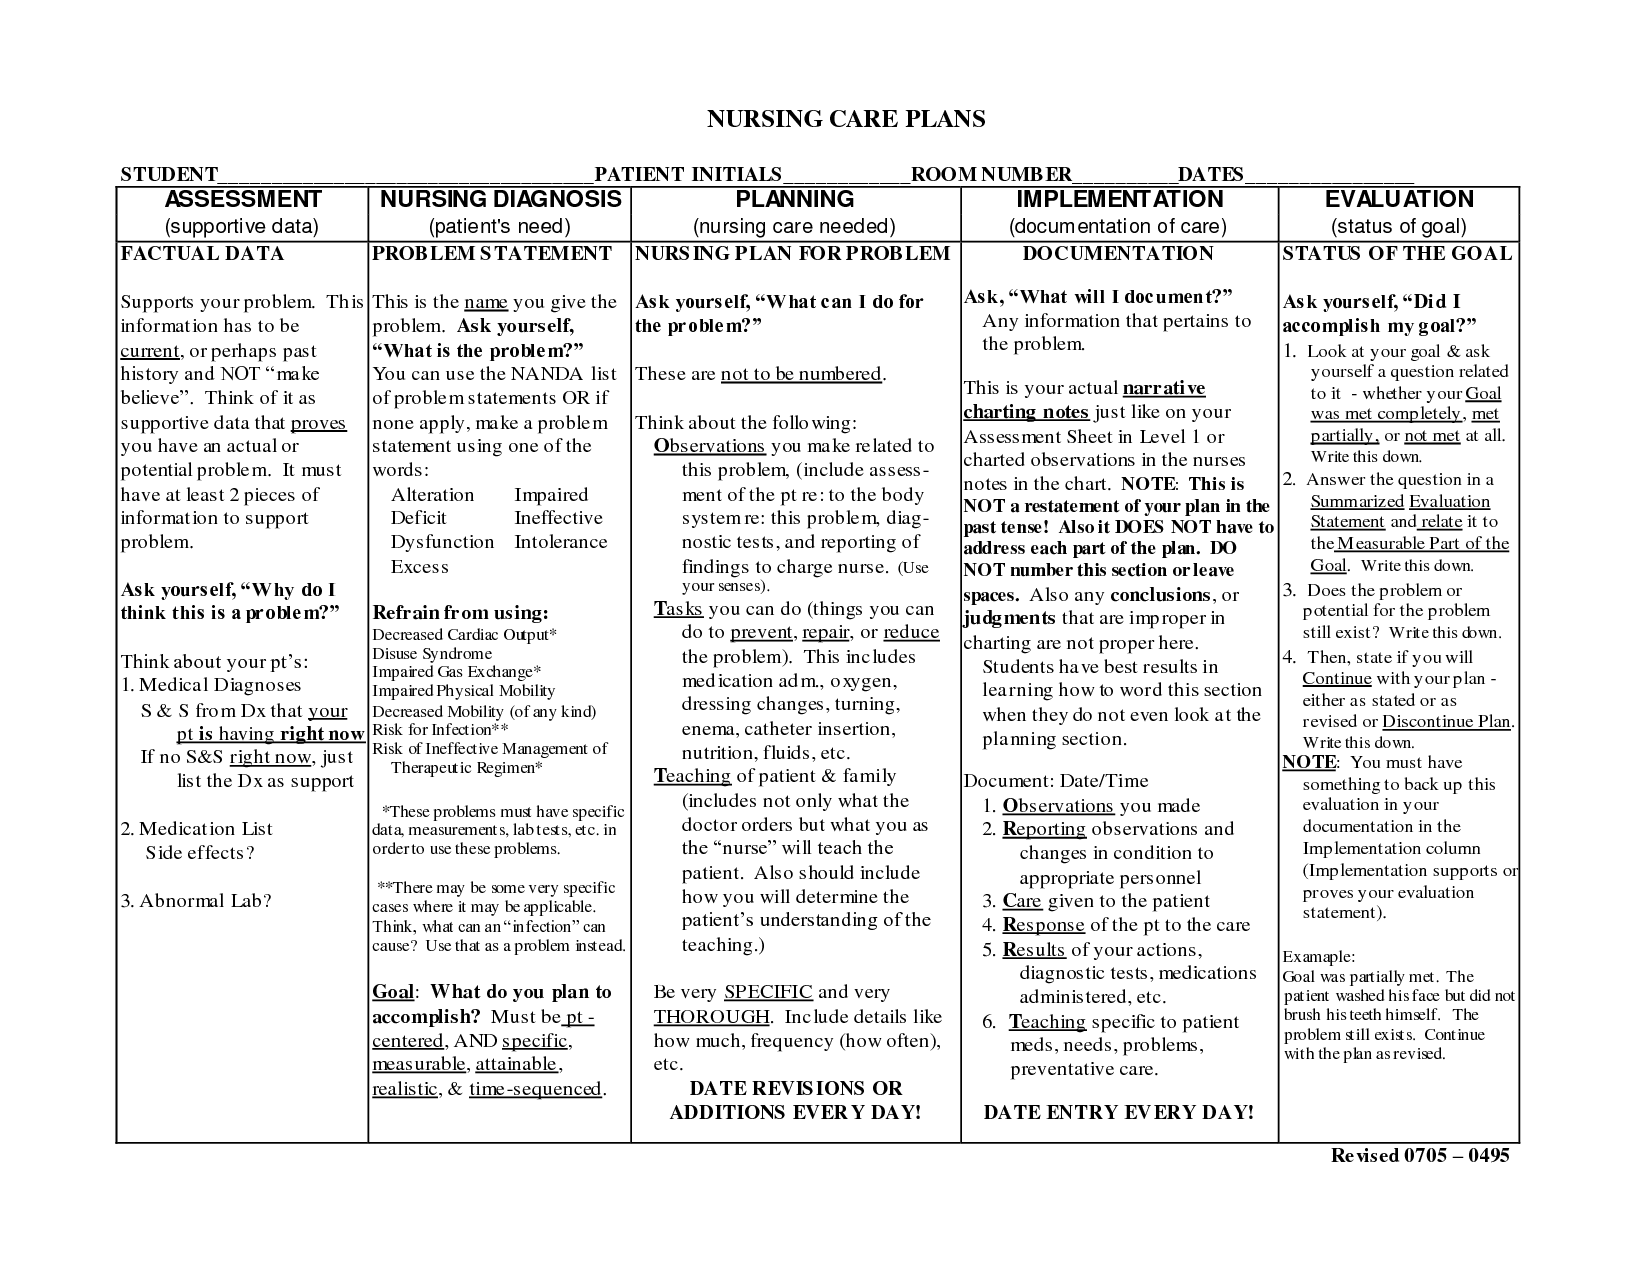 Nursing notes nursing care plans download as doc doc for Nursing lesson plan template